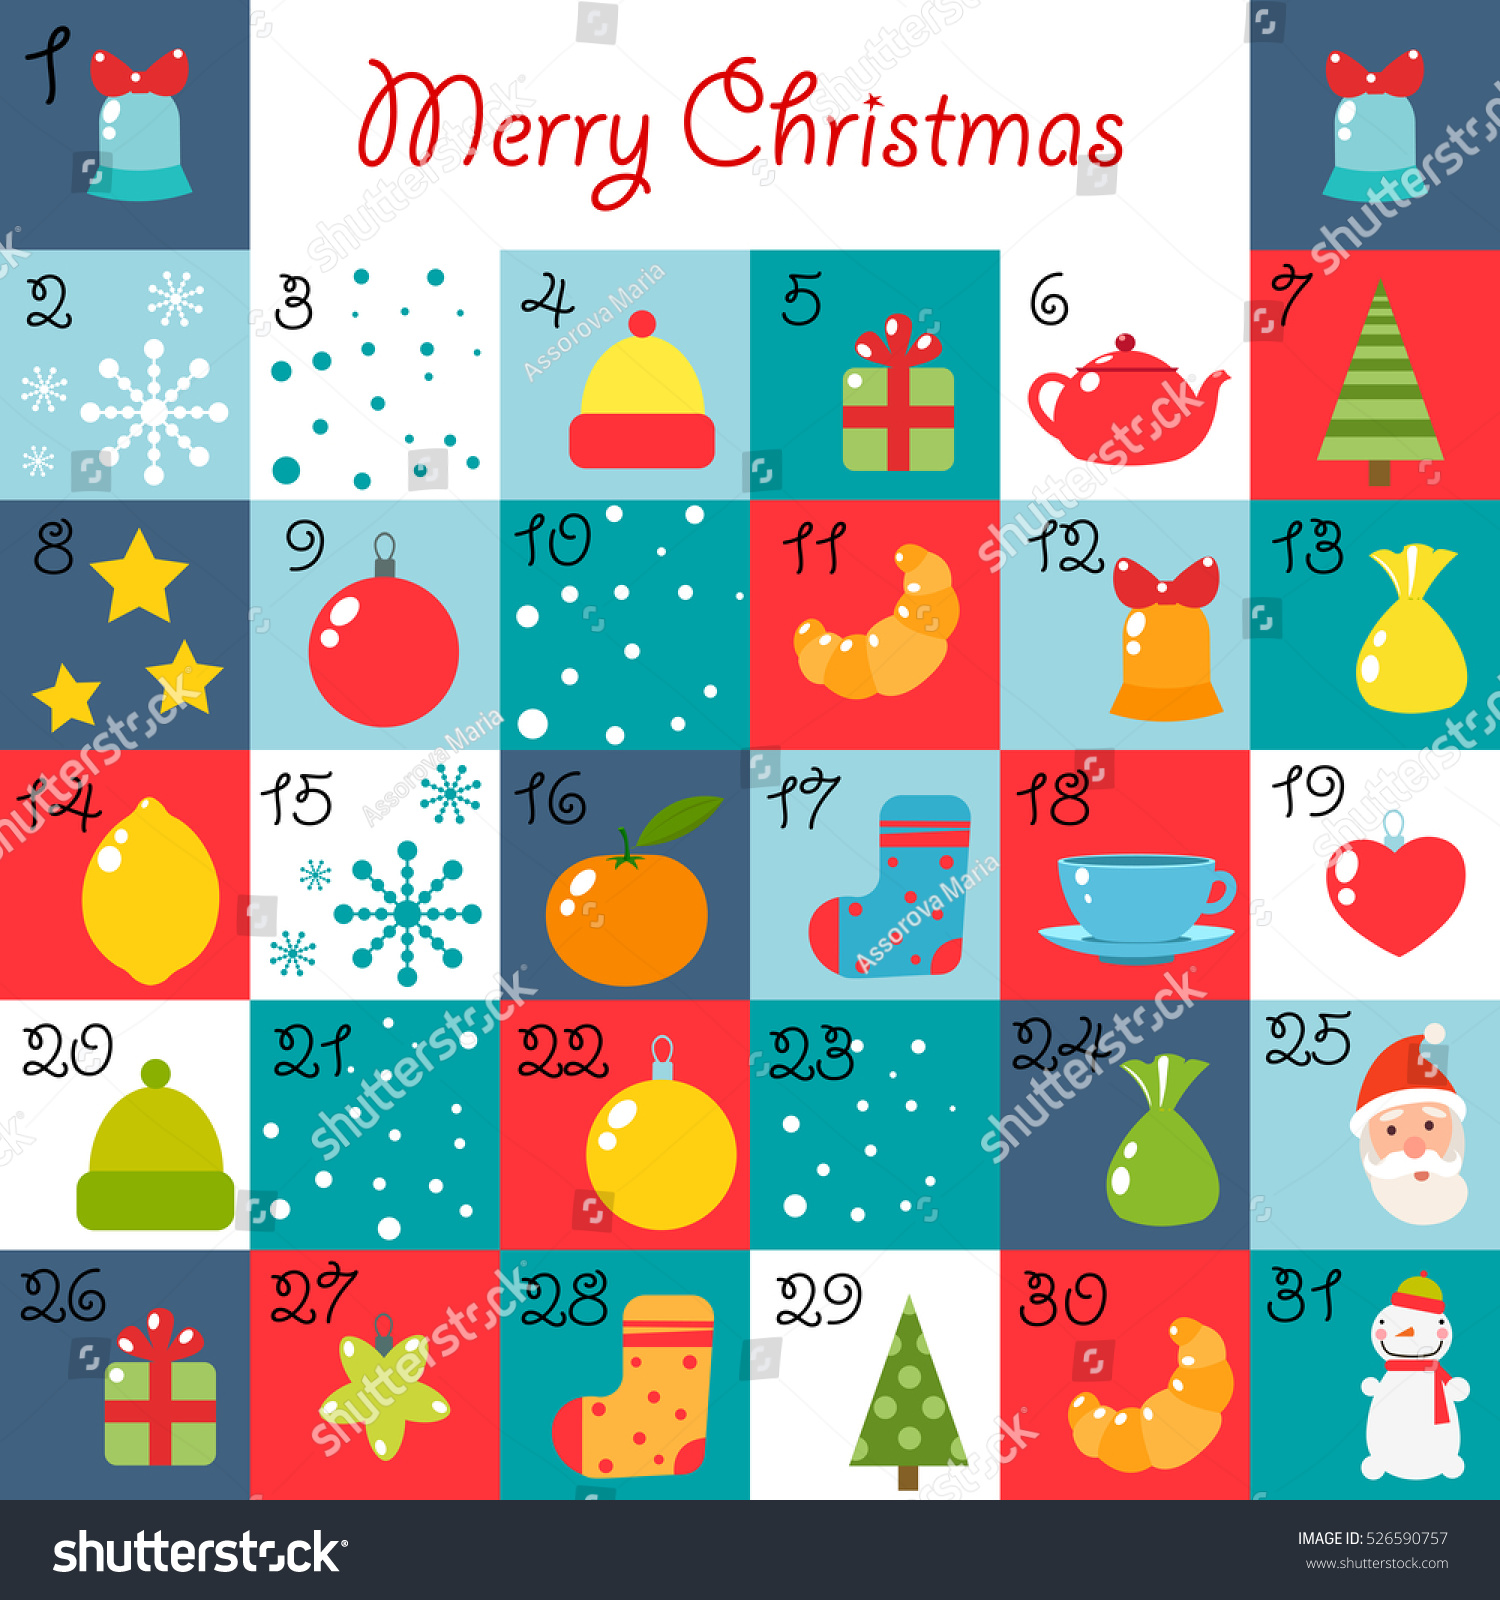 Christmas Calendar Illustration : Advent calendar christmas illustration